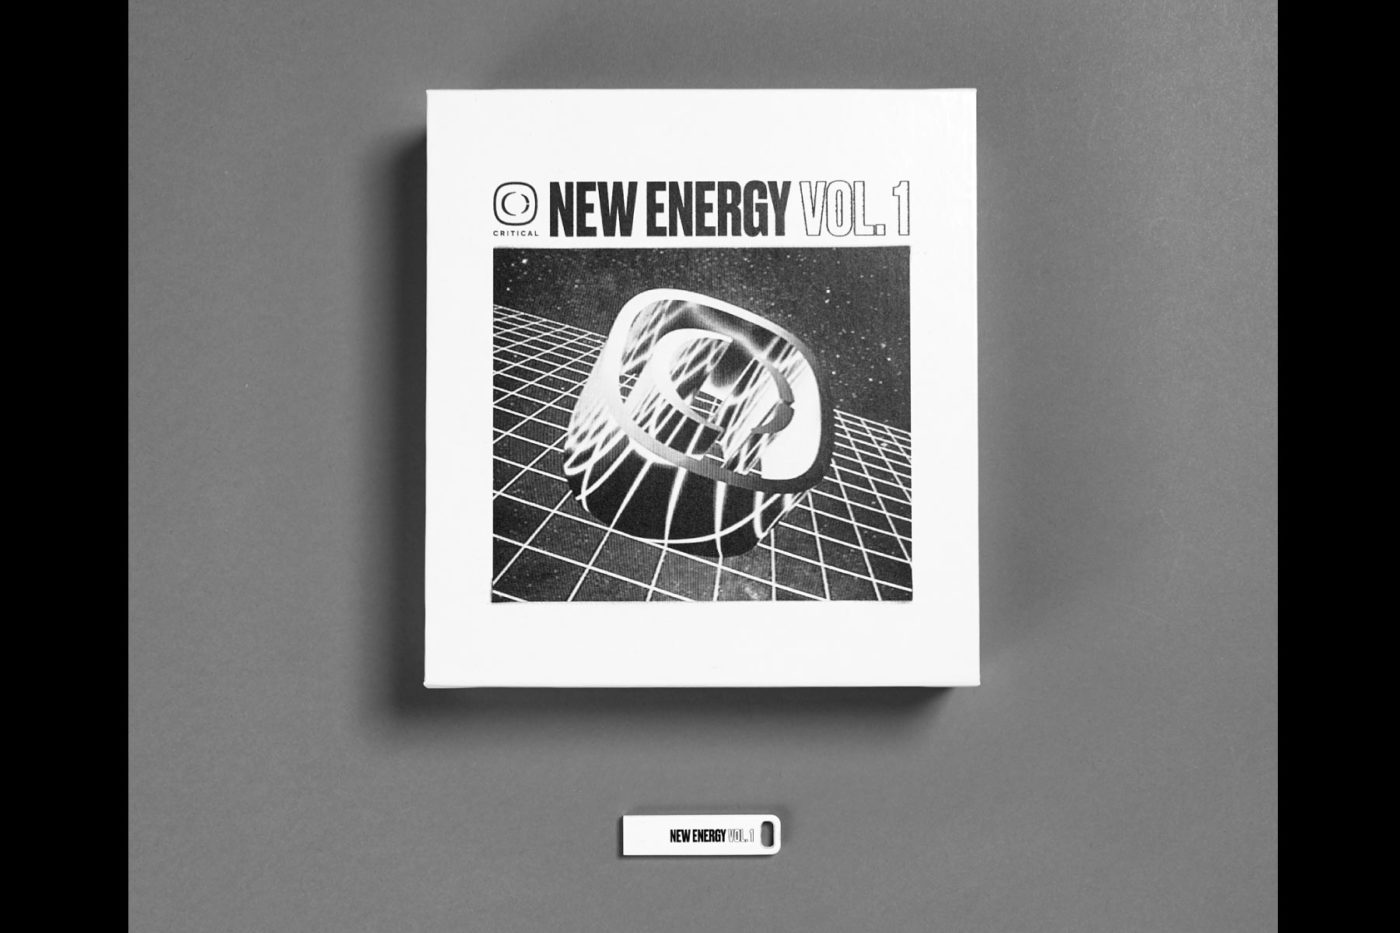 NEW ENERGY VOL.1